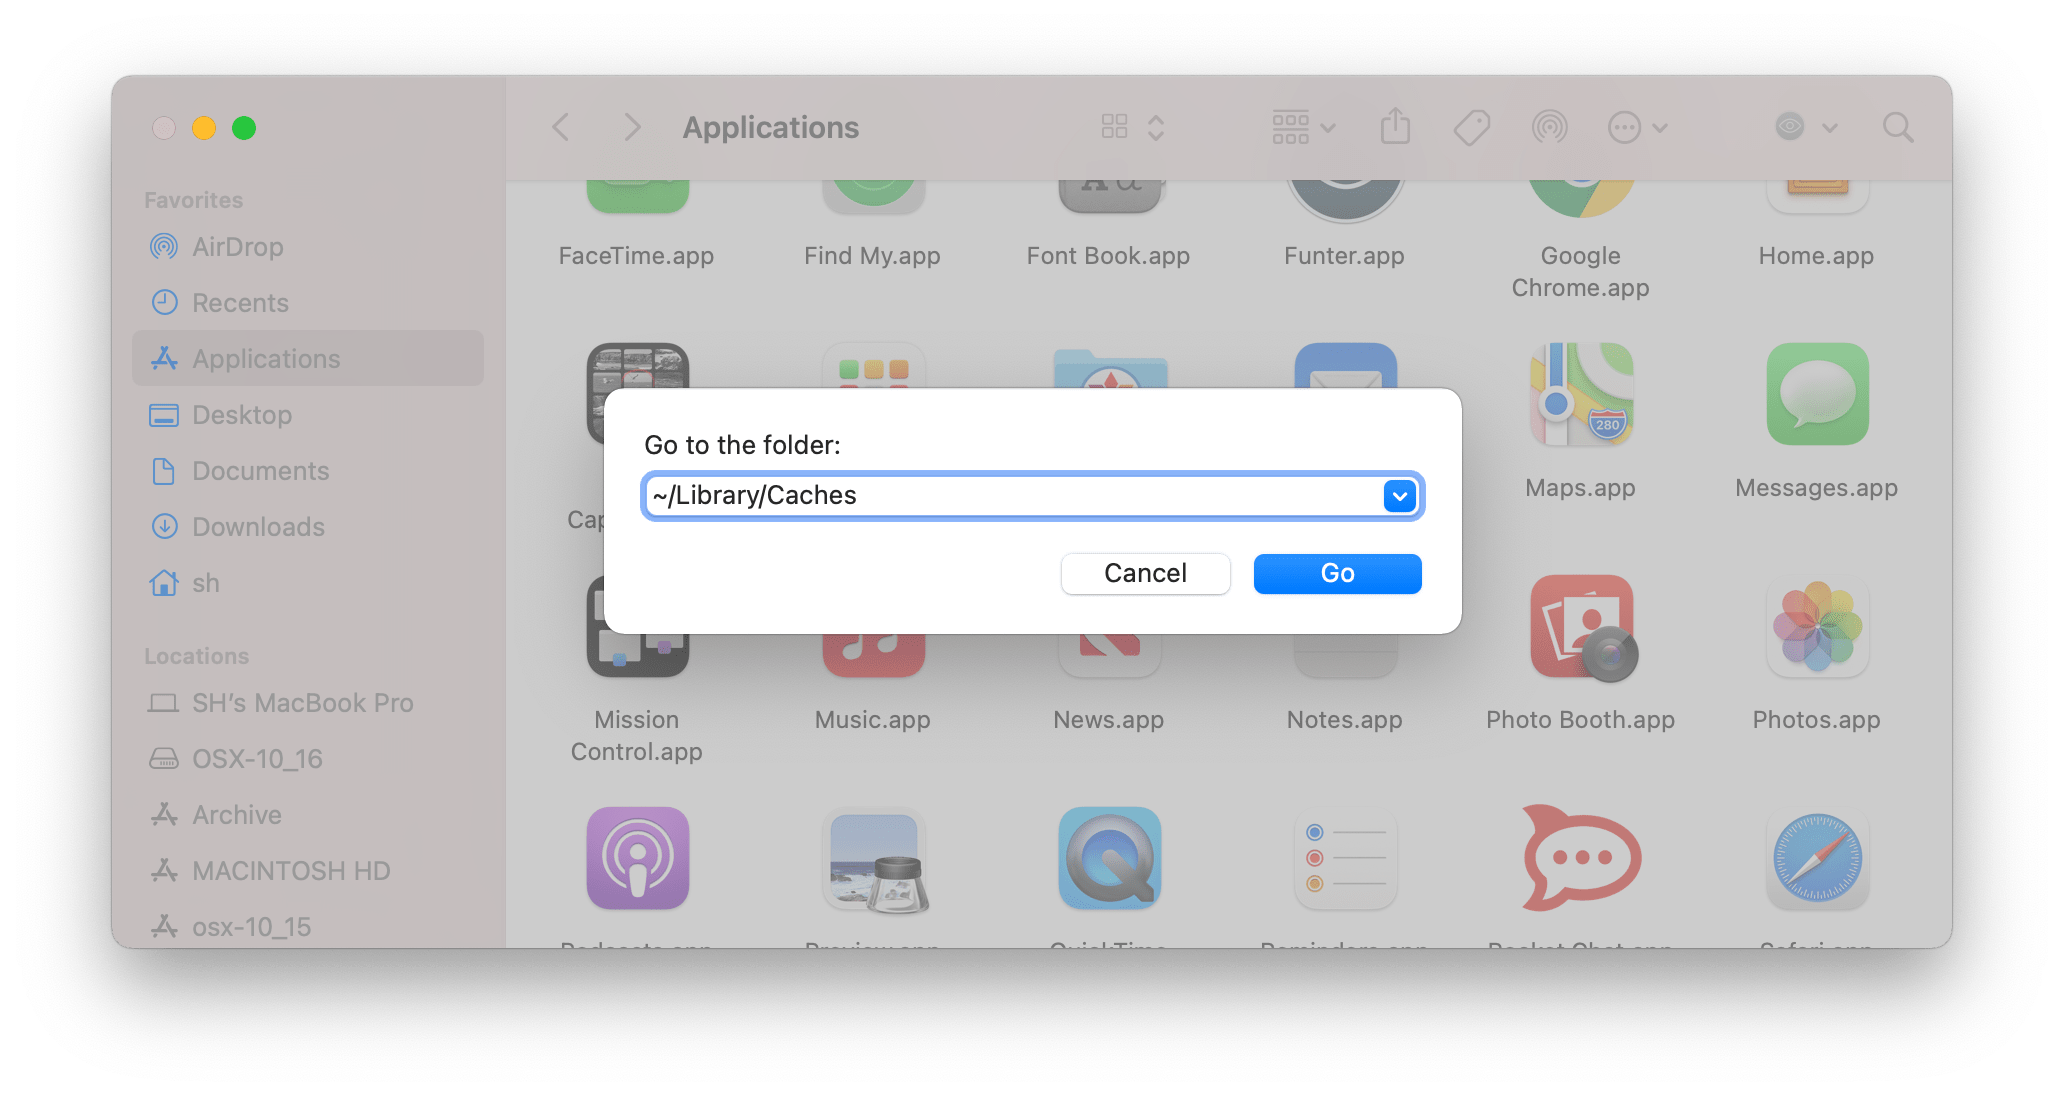 Go to the folder search field in Finder